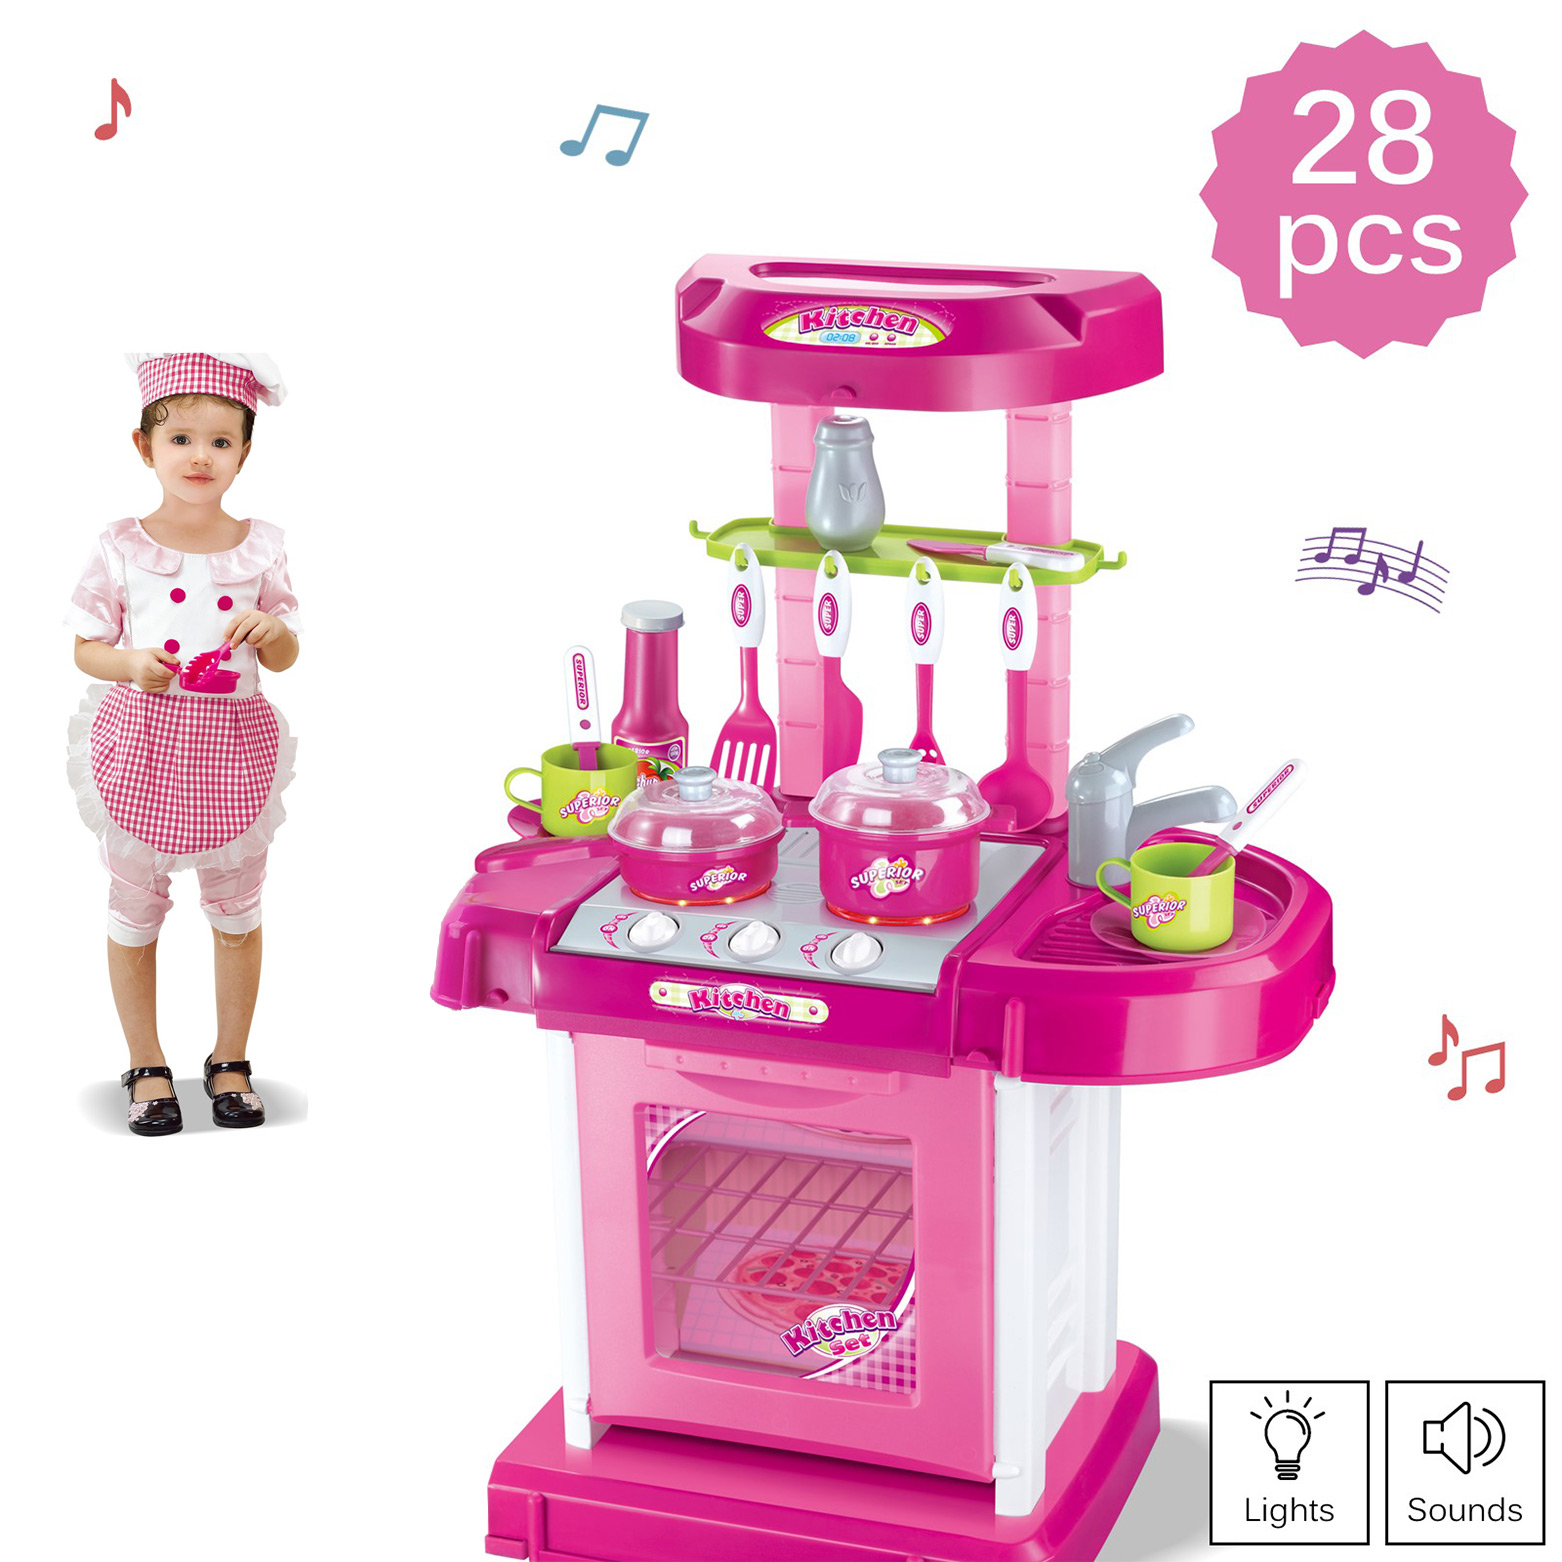 Deluxe Toy Kitchen Playset 2 Feet Tall With Pots Oven Stove Sink Appliances Sounds And Lights Kids Pretend Play Perfect Gift For Early Learning Educational Preschool Girls Boys Cooking